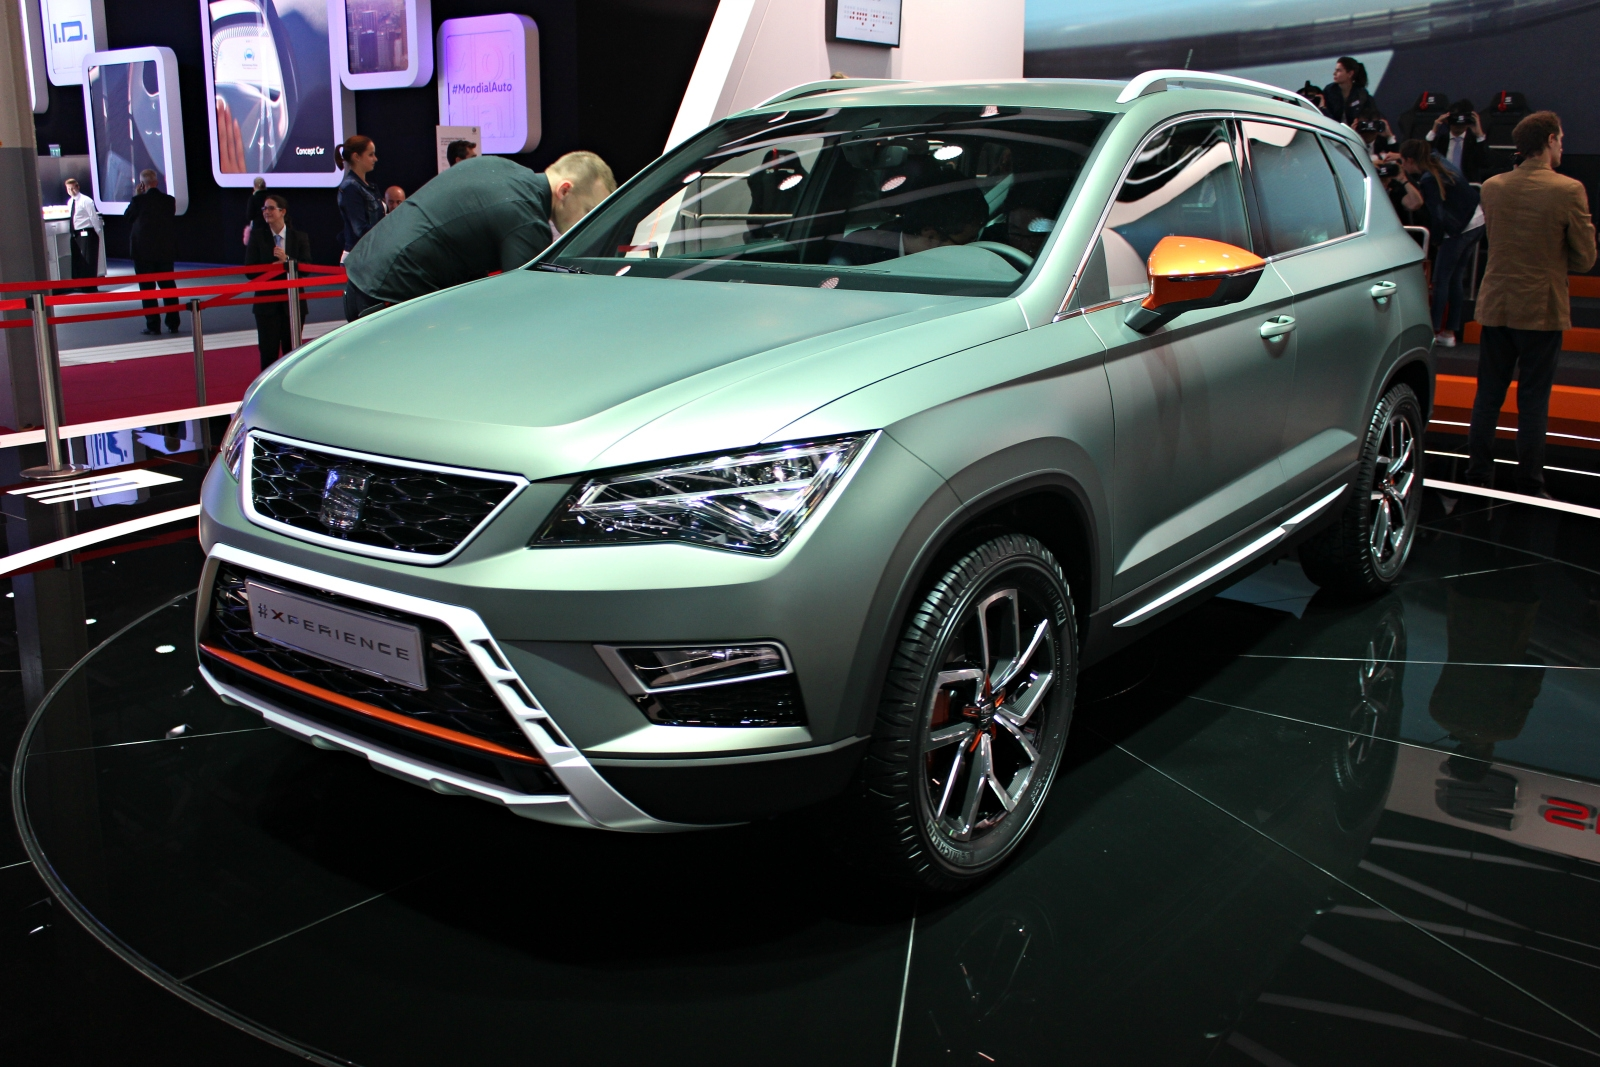 seat ateca x perience un peu plus x tr me vid o en direct du mondial de paris 2016. Black Bedroom Furniture Sets. Home Design Ideas